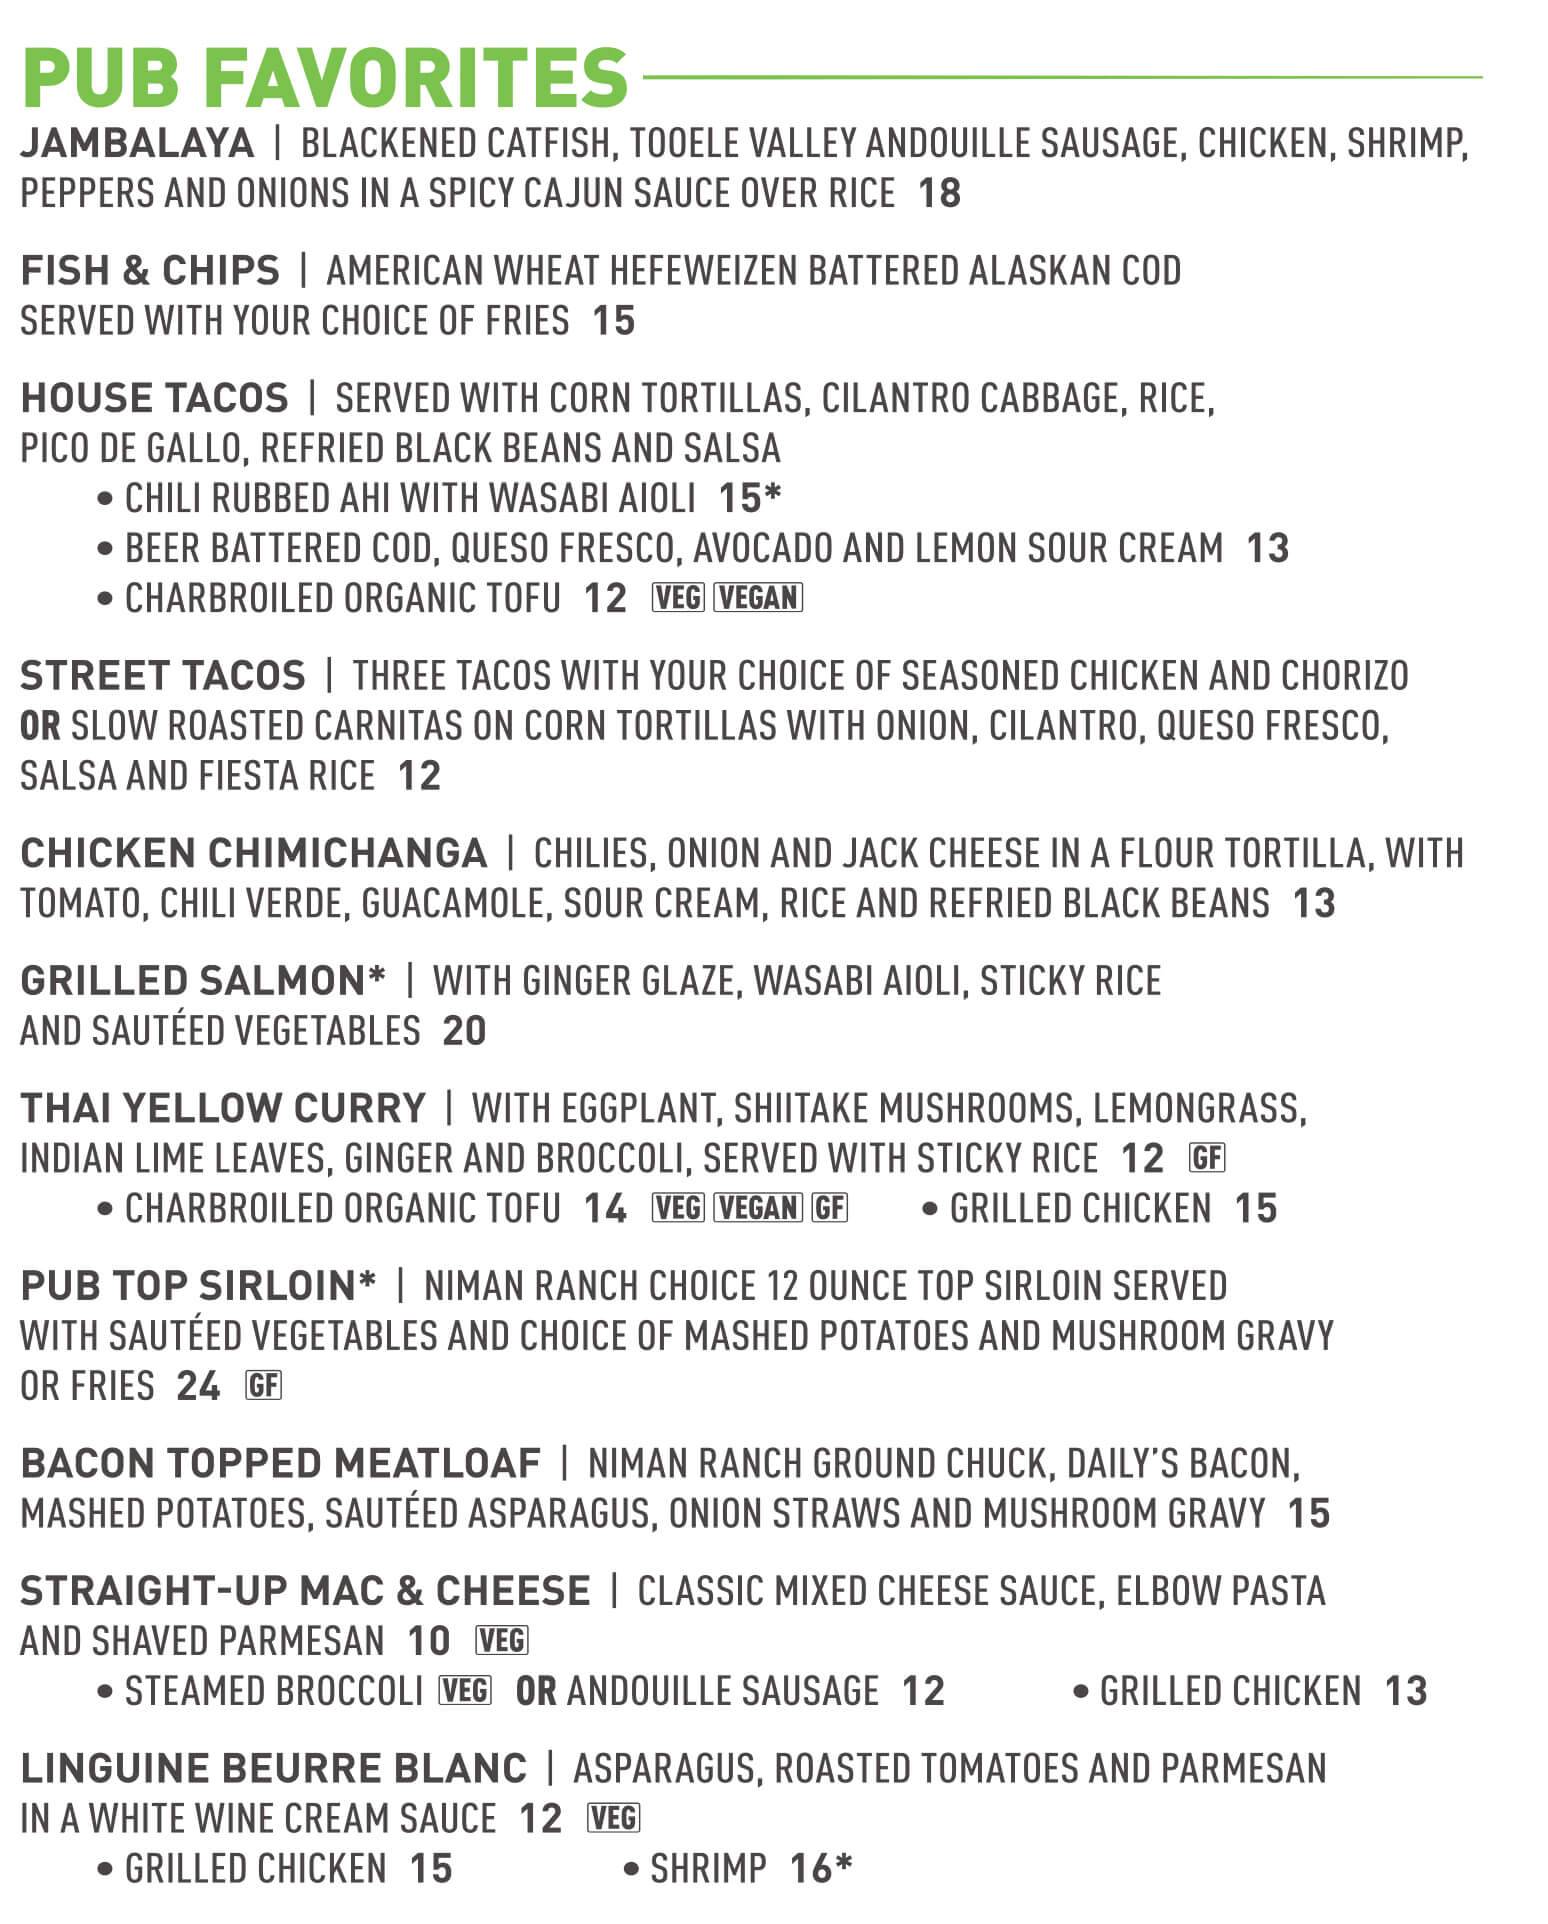 Squatters brew pub pub favorites menu